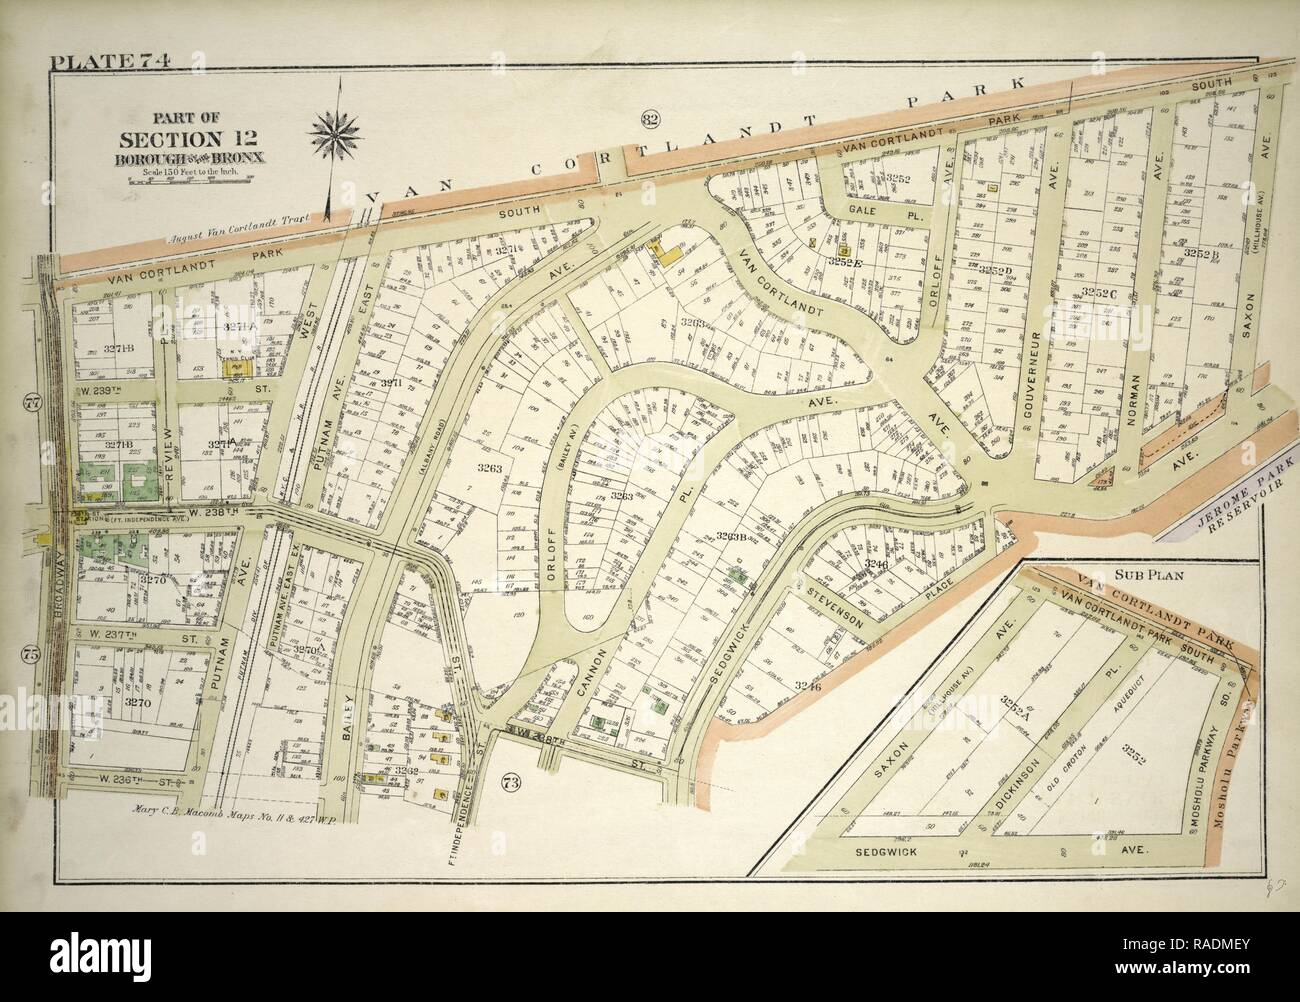 Plate 74, Part of Section 12, Borough of the Bronx. Bounded by Van Cortlandt Park South, Mosholu Parkway, Sedgwick reimagined - Stock Image